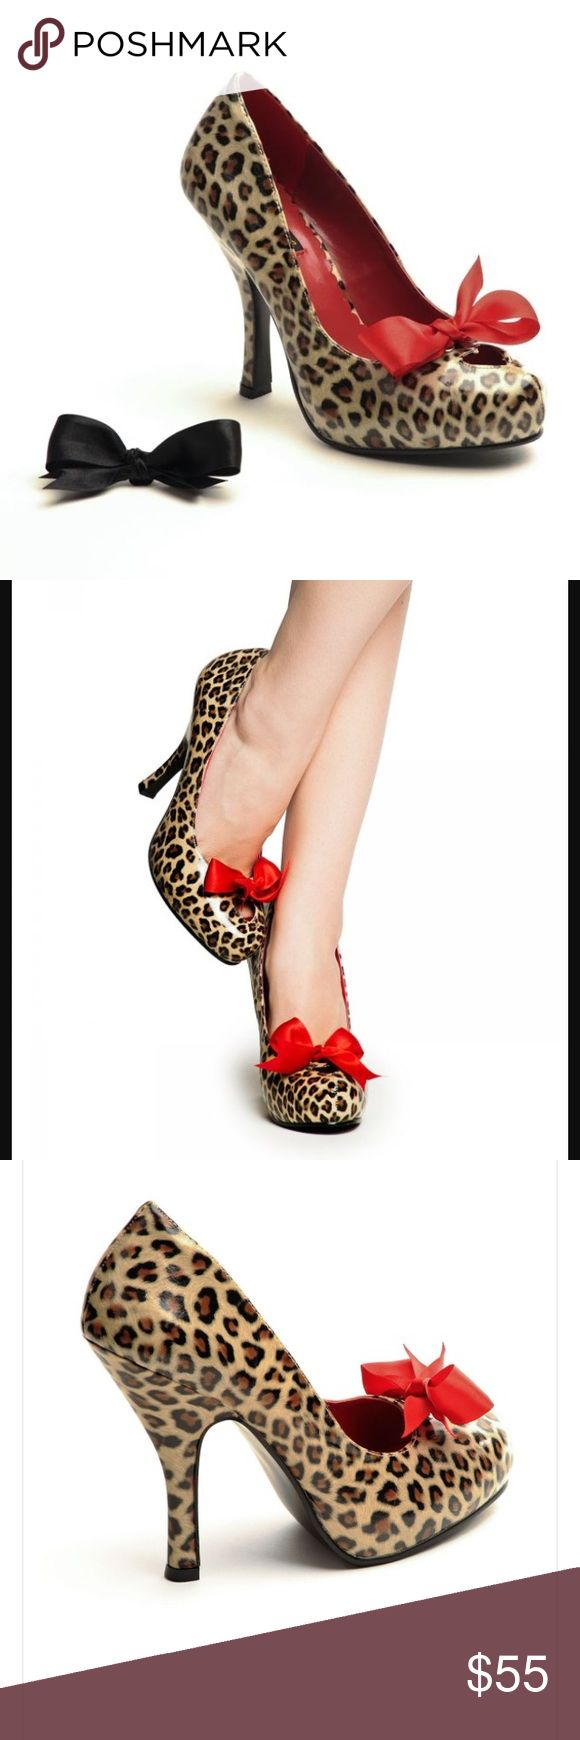 Pinup Girl Couture Cutie Pie cheetah heels-NEW! Pinup Girl Couture Cutie Pie cheetah heels-NEW! Brand new in box/ never used! Each shoe is wrapped in a bag and has red and black interchangeable bows! Beyond precious styling! 4.5 inch heels with a .75 inch concealed platform. Amazing heart detail in front! Perfect retro/ pinup shoe! Man made! Runs true to size! Pinup Girl Couture Shoes Heels